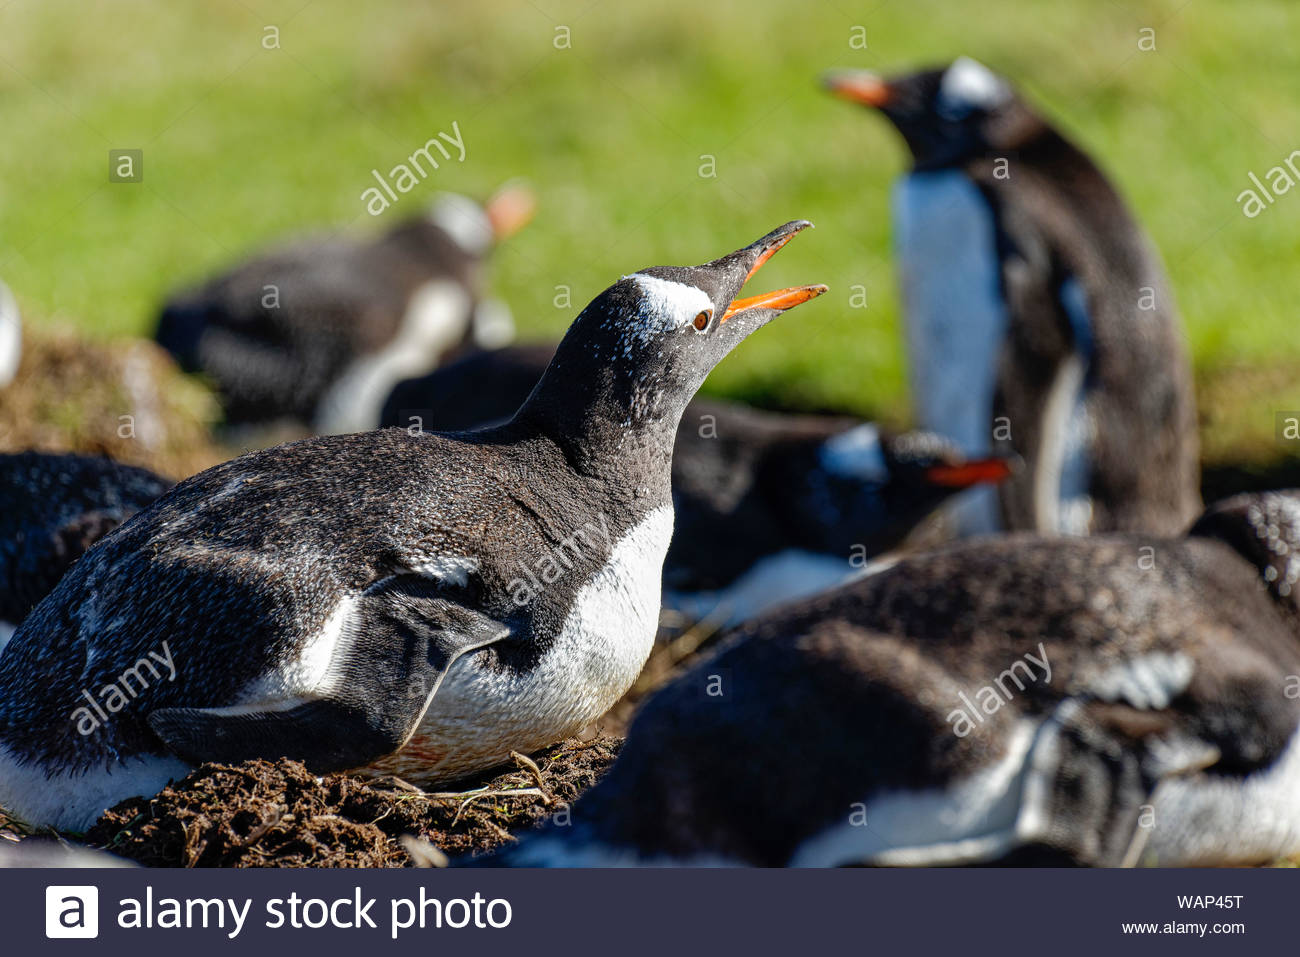 Brütender Eselspinguin (Pygoscelis papua) mit geöffnetem Schnabel, Falkland Inseln. Breeding gentoo penguin with open beak. Stock Photo